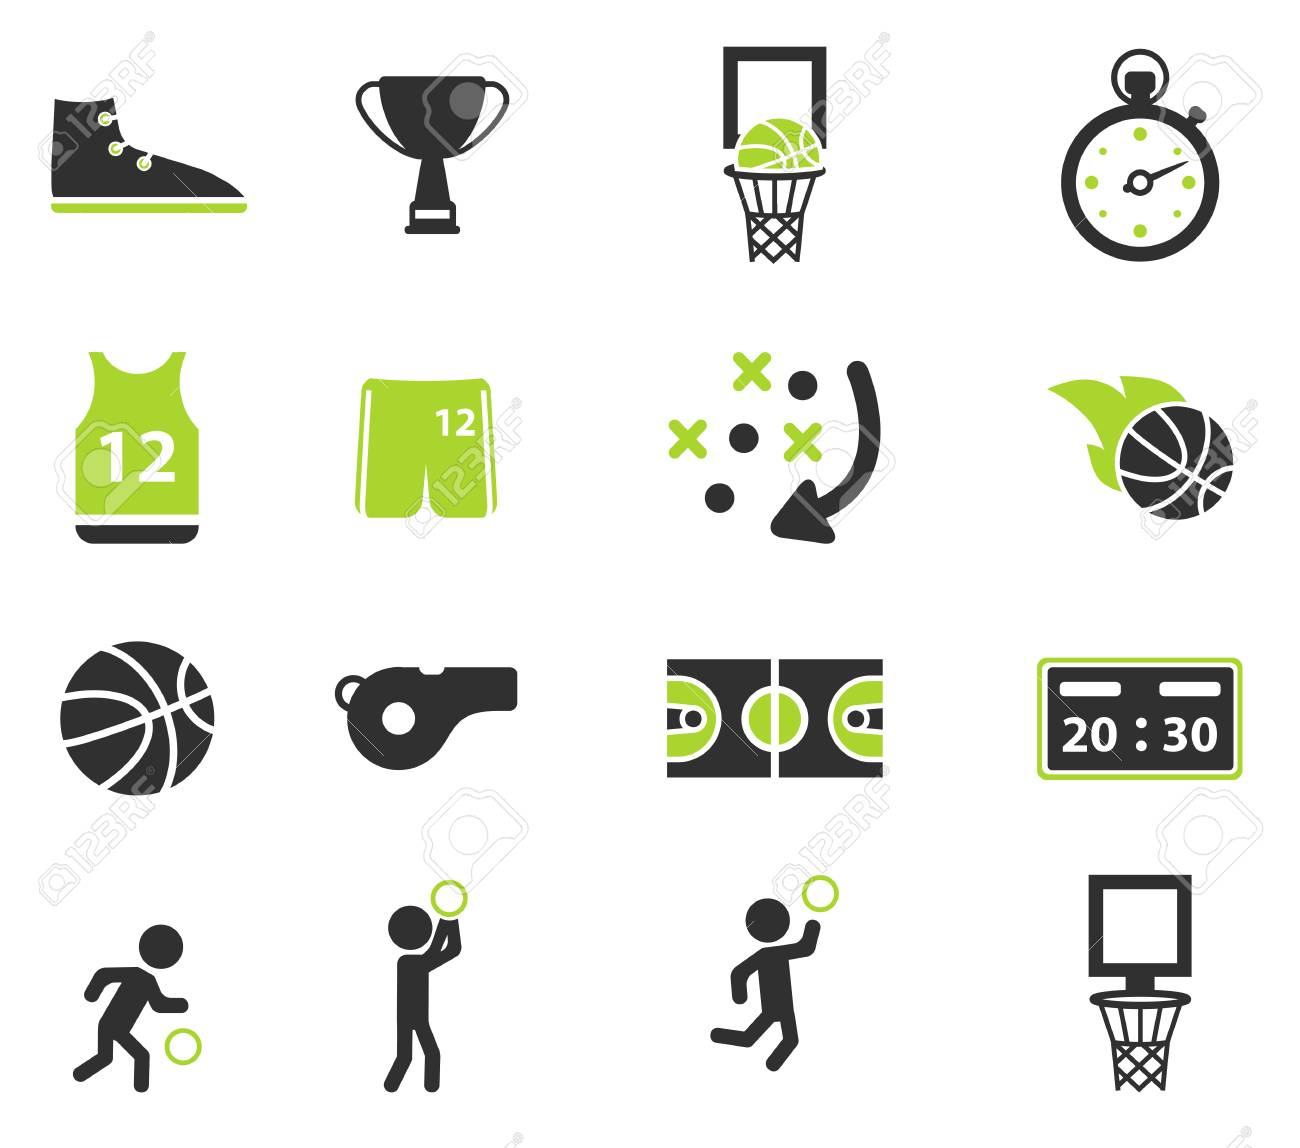 Basketball simply symbol for web icons royalty free cliparts basketball simply symbol for web icons stock vector 47536232 biocorpaavc Choice Image